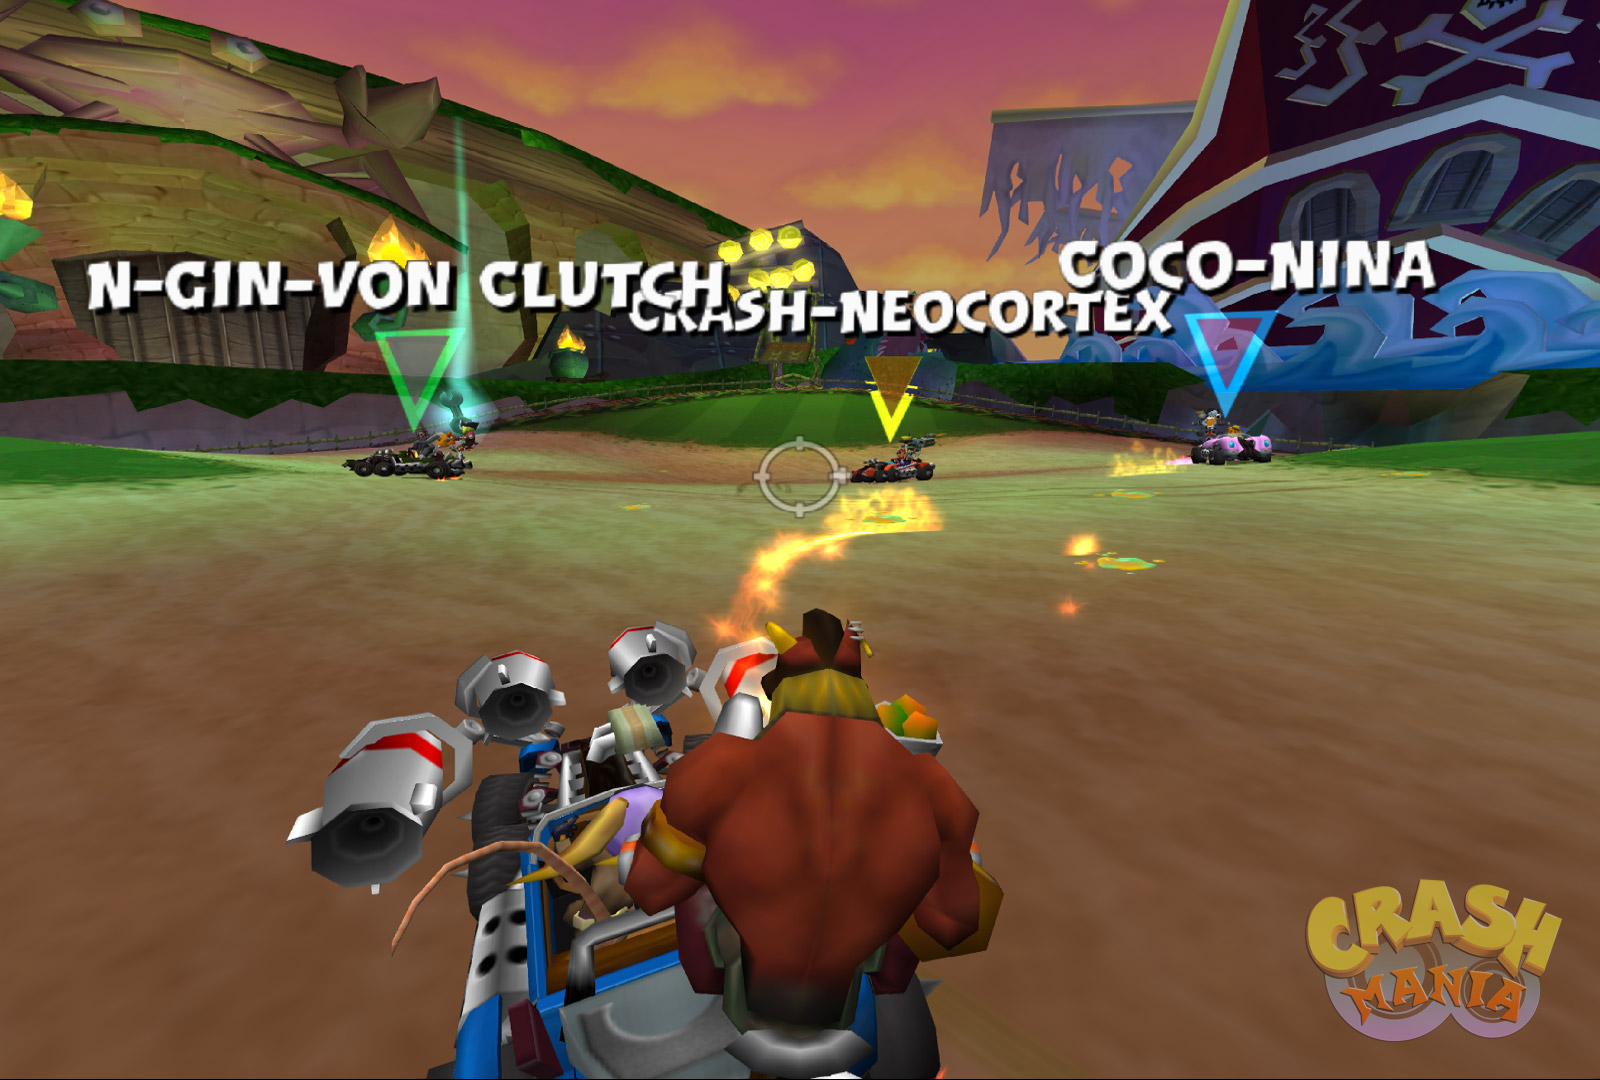 A battle arena where all 8 characters are divided in 4 cars and shooting at each other.